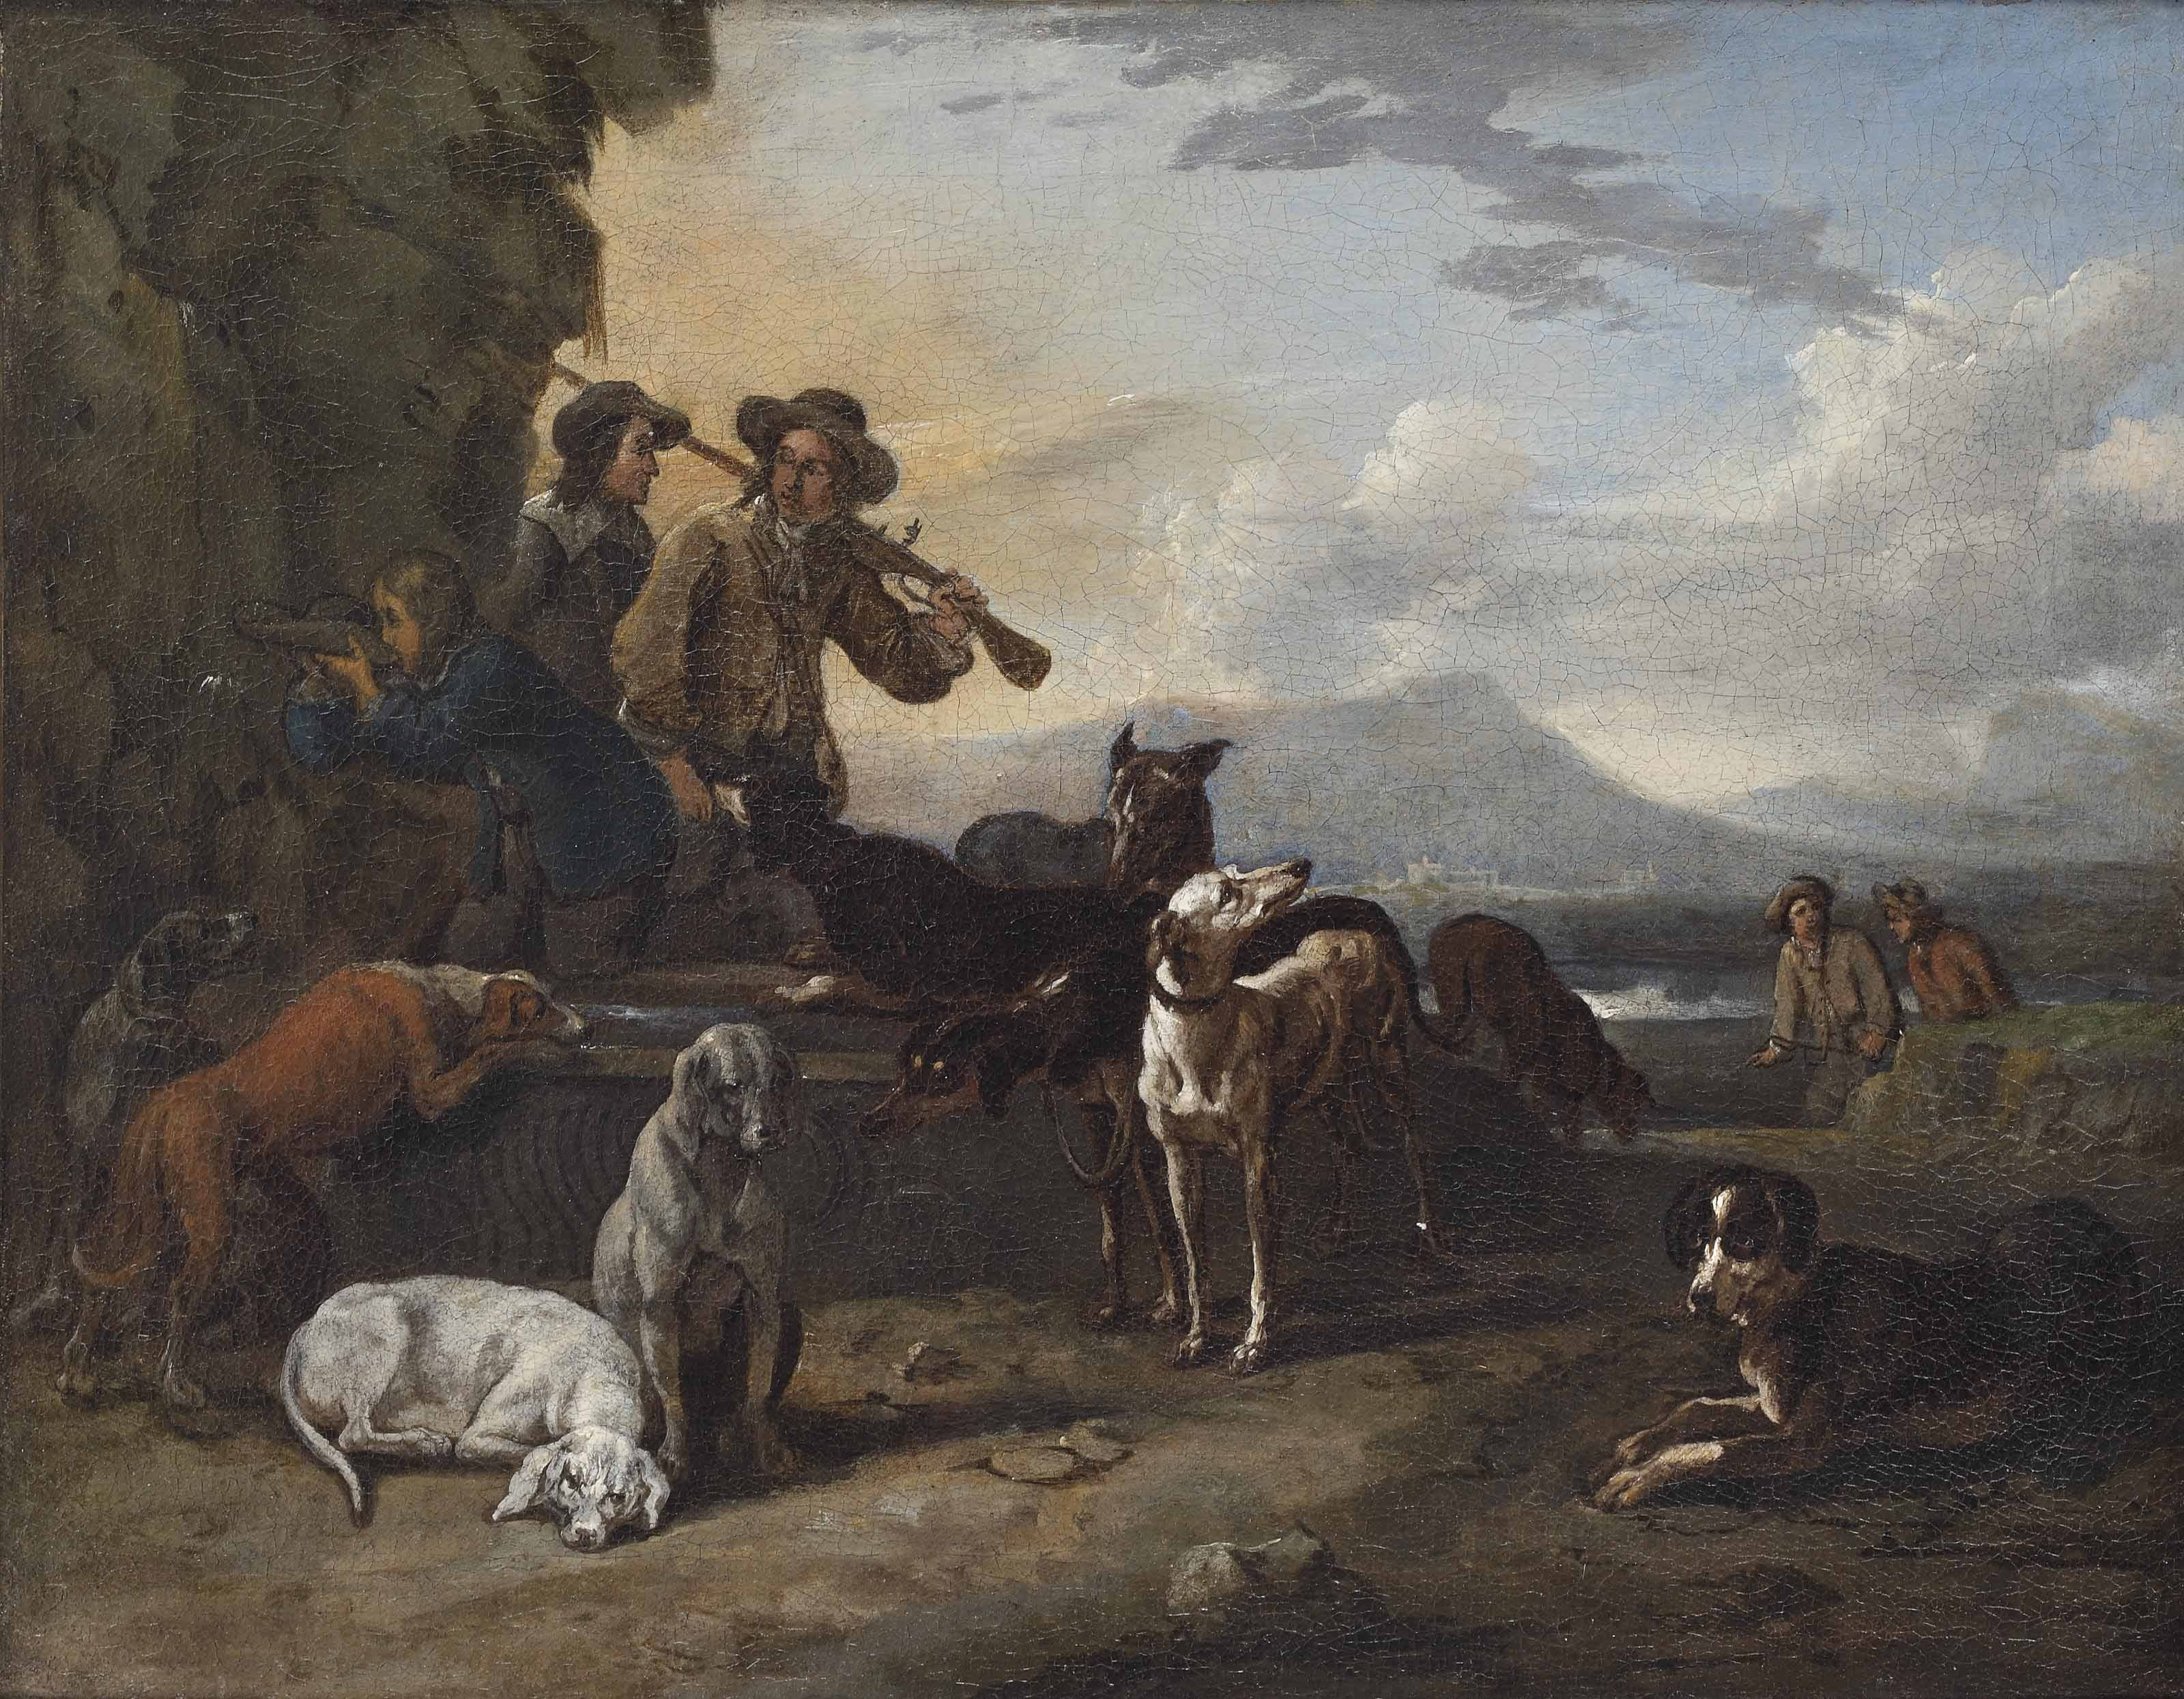 A hunting party with dogs resting by a well in a landscape